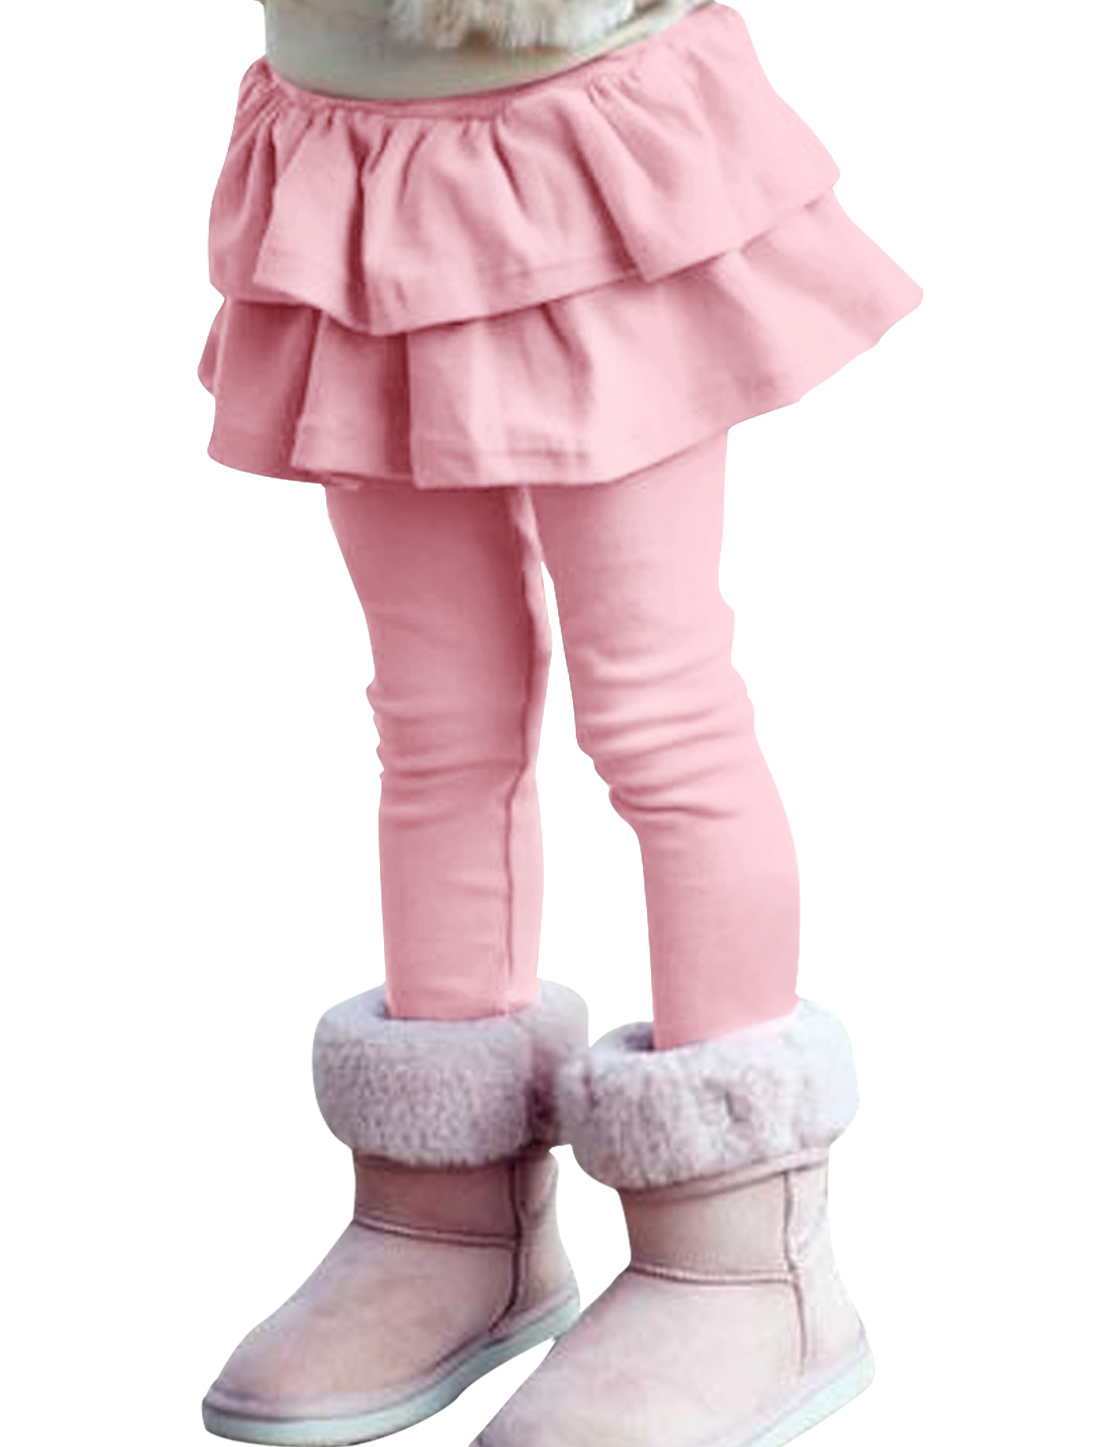 Girls Flounced Hem Embellished Sweet Pants Pink 4T